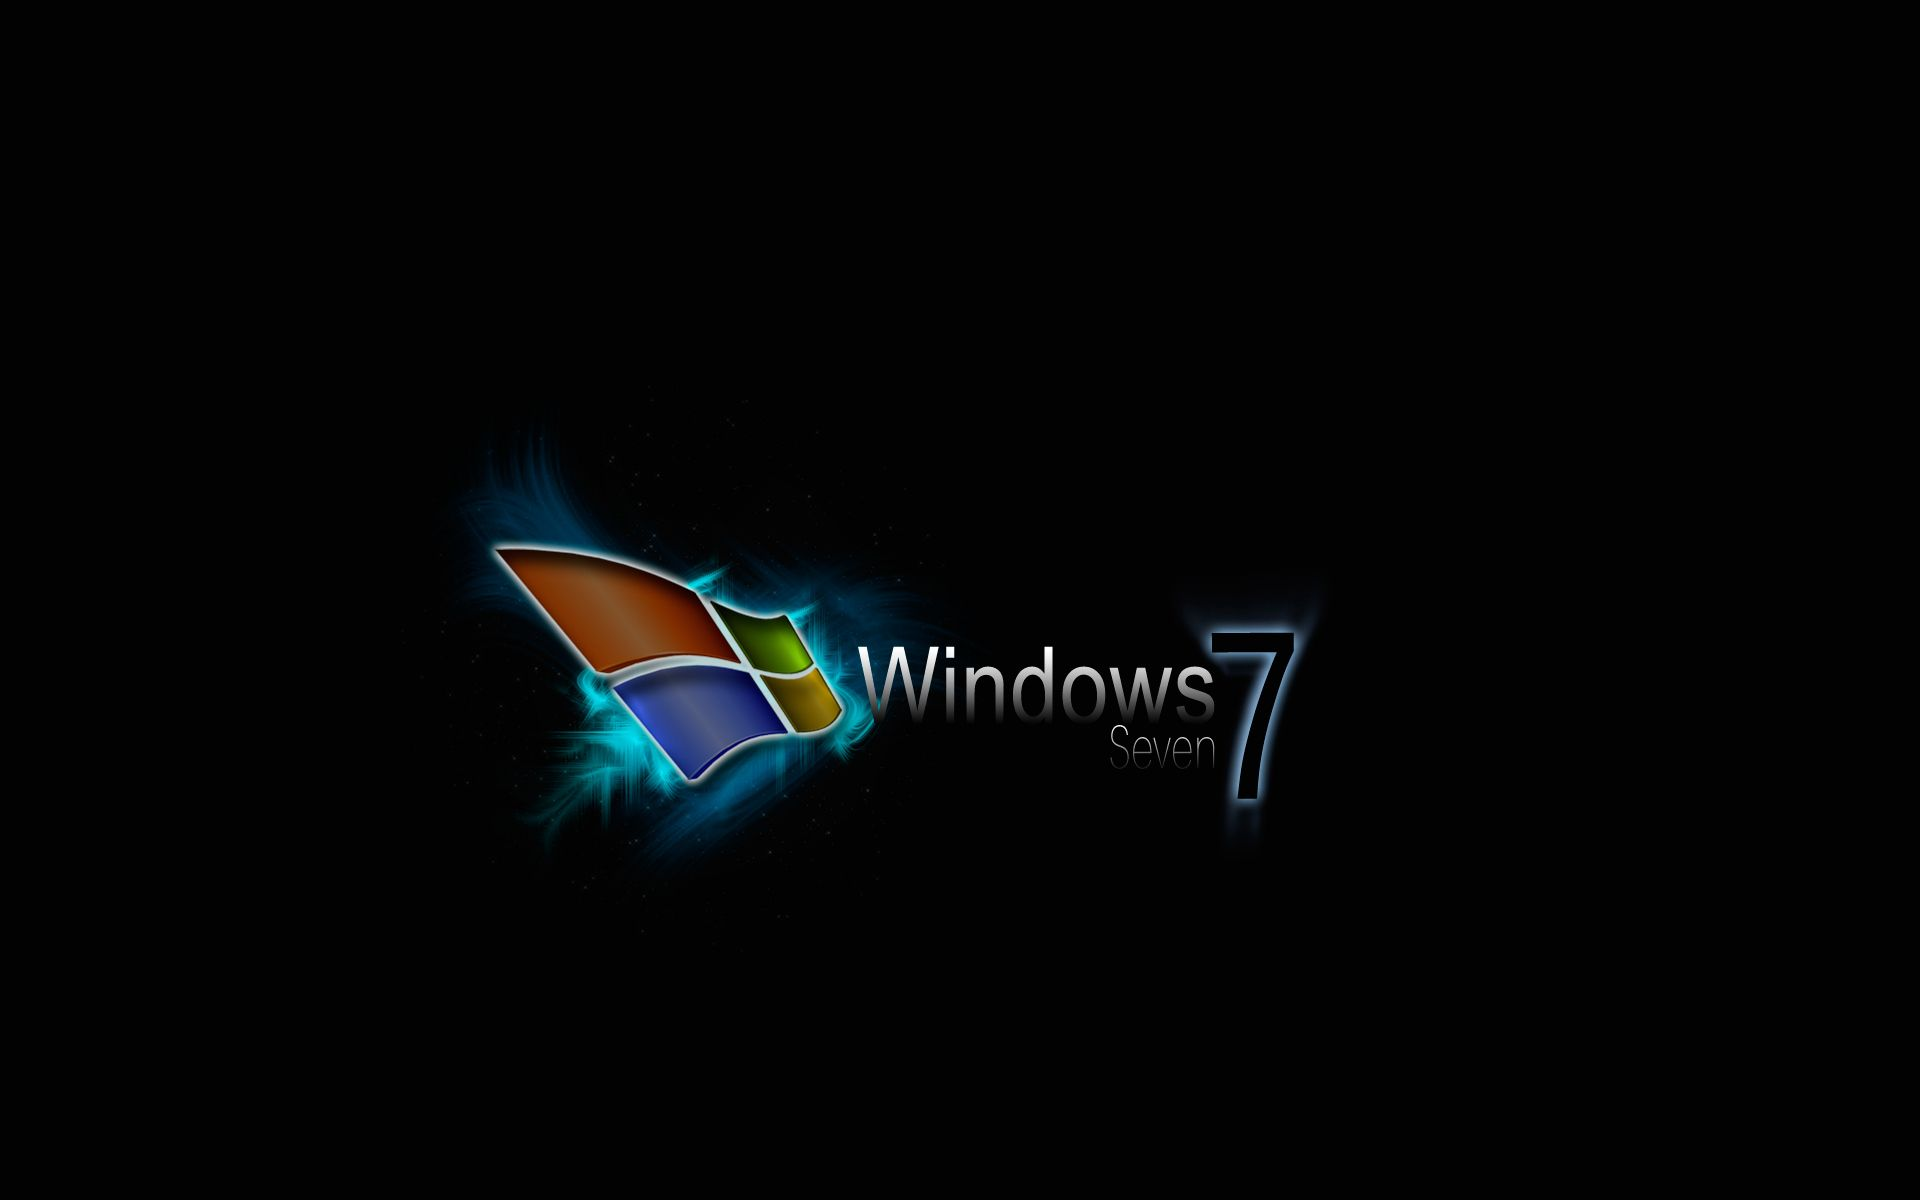 Microsoft Windows HD PC Wallpapers Amazing Wallpaperz 1920x1080 High Quality For 7